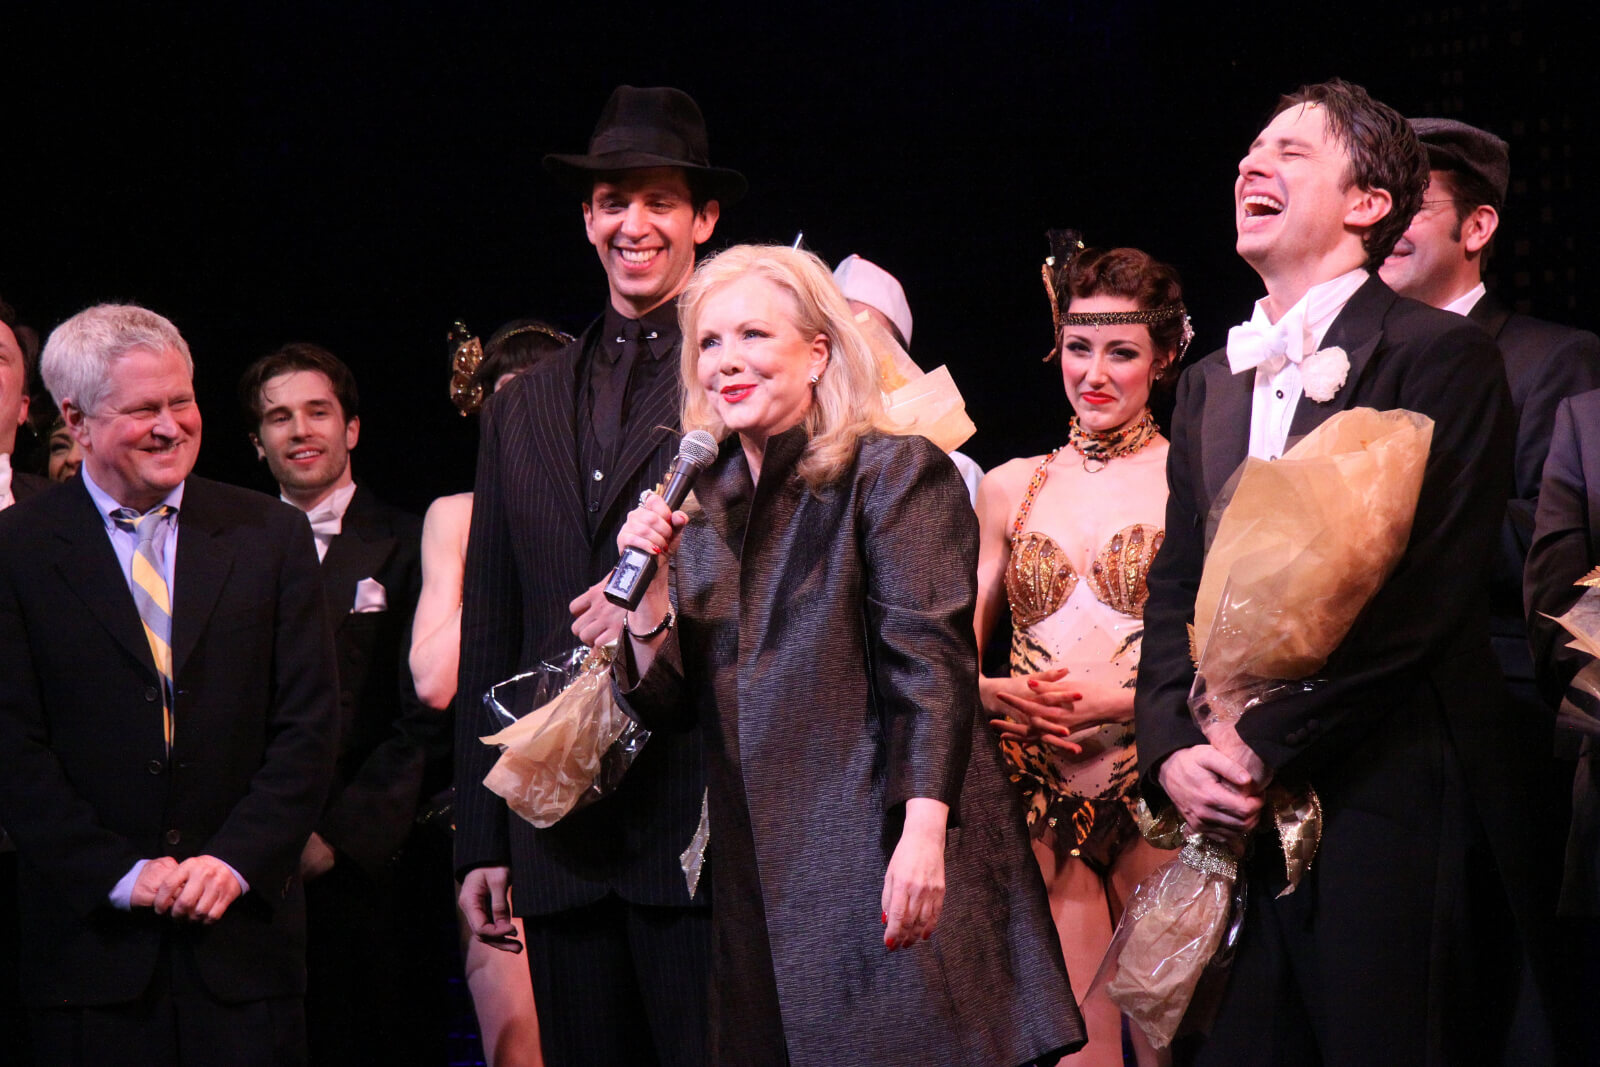 Susan Stroman at the opening night curtain call of Bullets Over Broadway, standing with a microphone and flanked by cast, including Nick Cordero and Zach Braff.